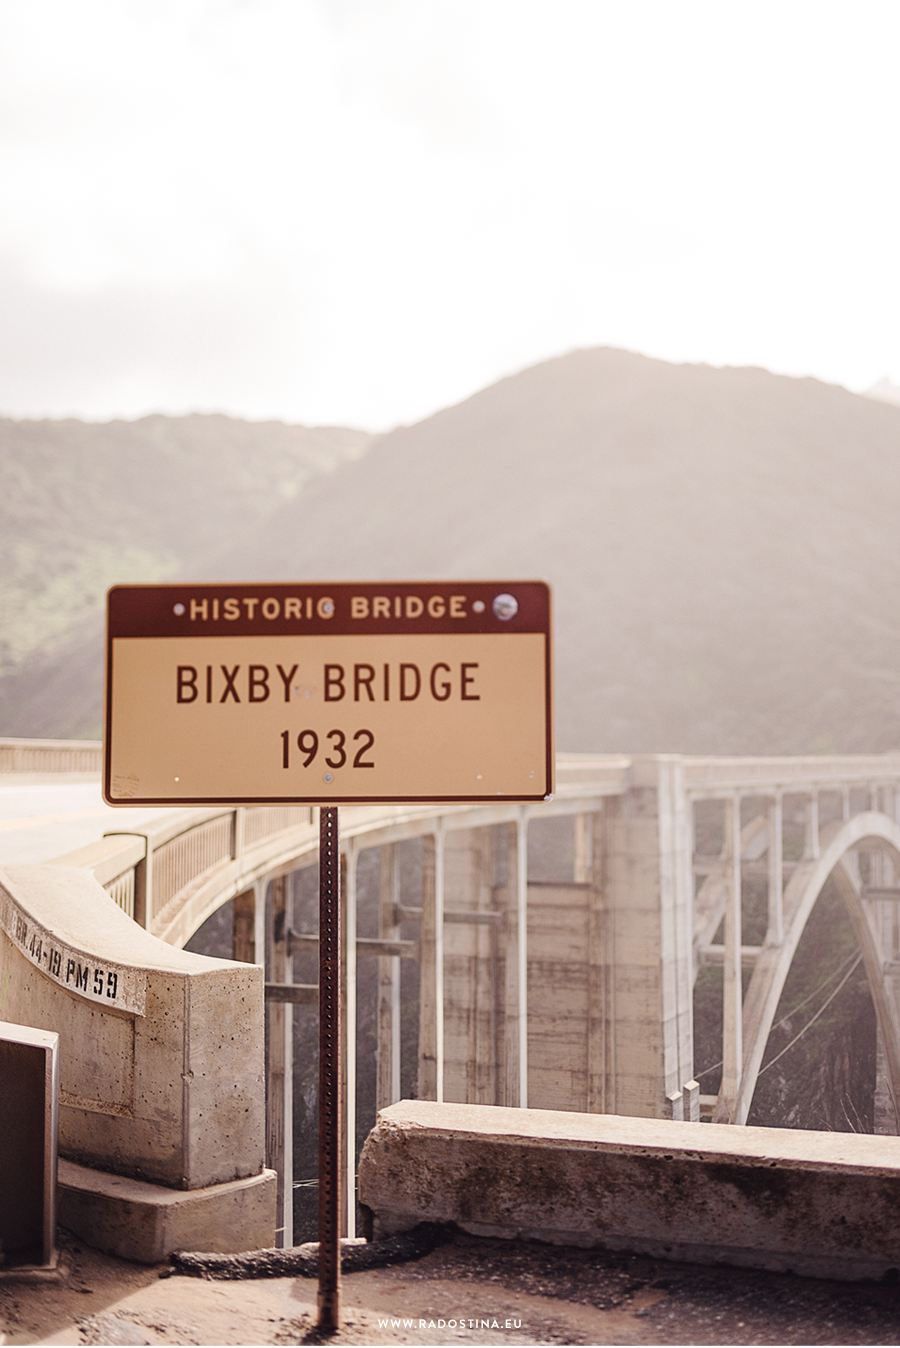 radostina_bixby_bridge_01.png